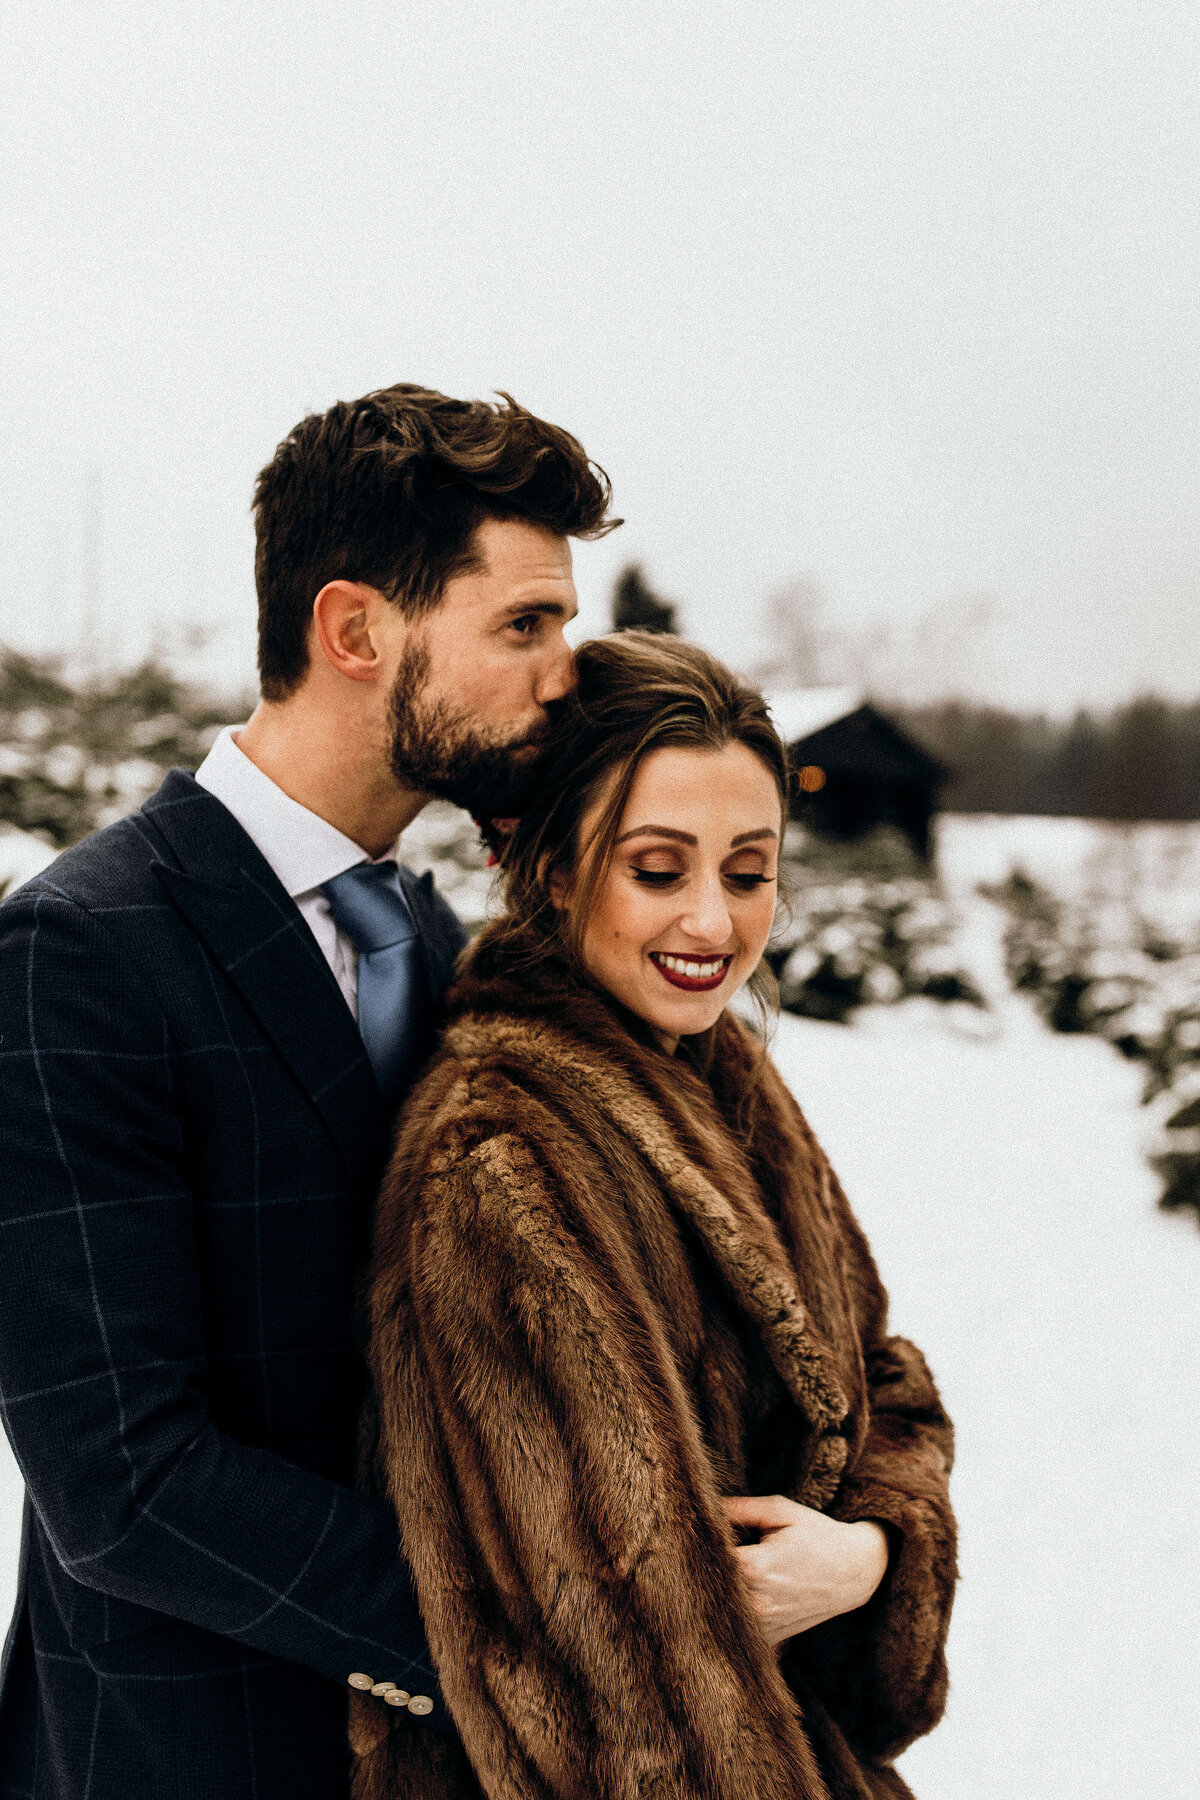 Styled Shoot - Winter Wonderland - Duitsland - 2019 2933